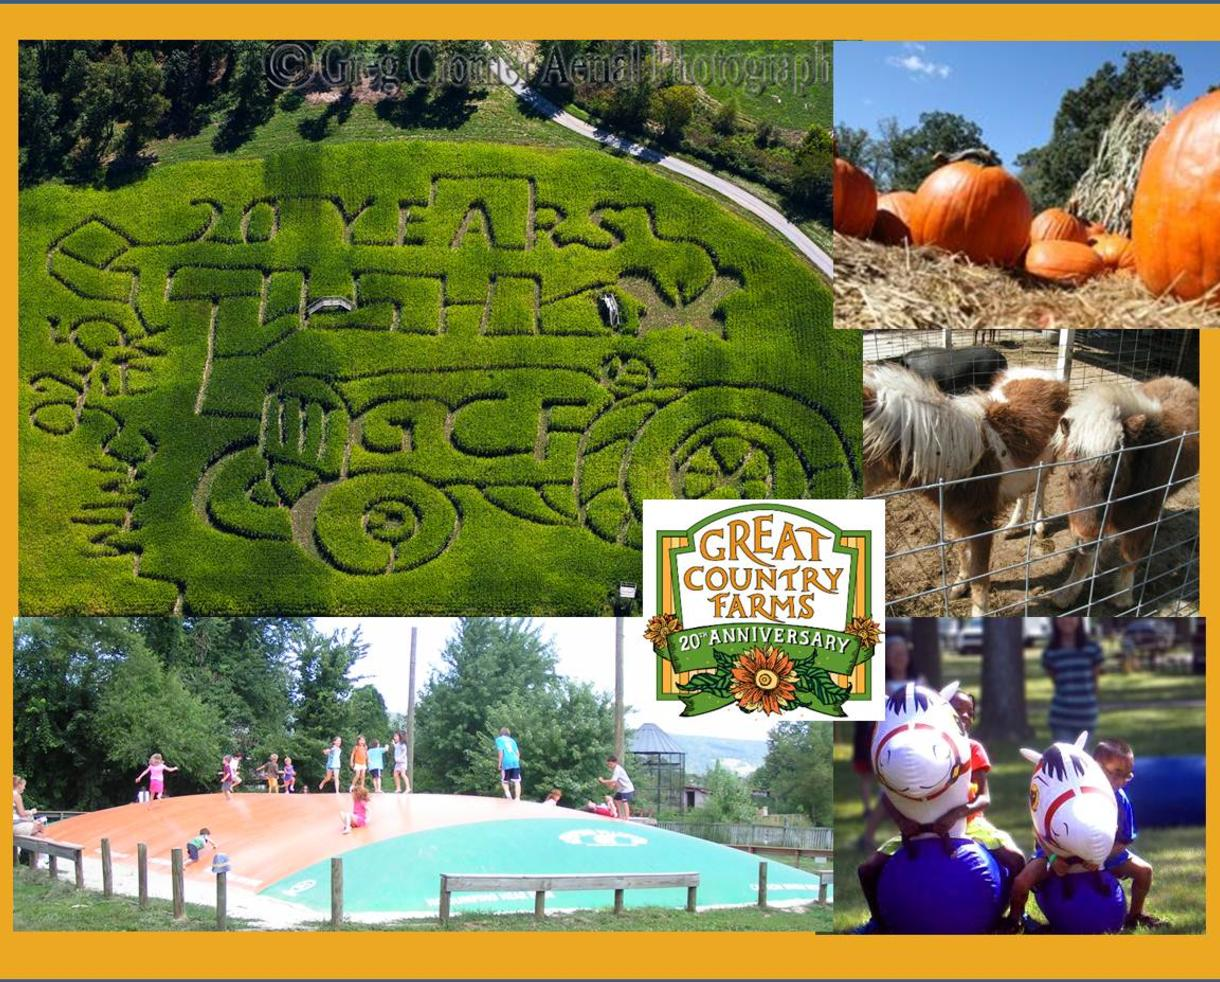 $8 for Nov. 2nd or 3rd Admission - Great Country Farms (Up to 50% Off!)